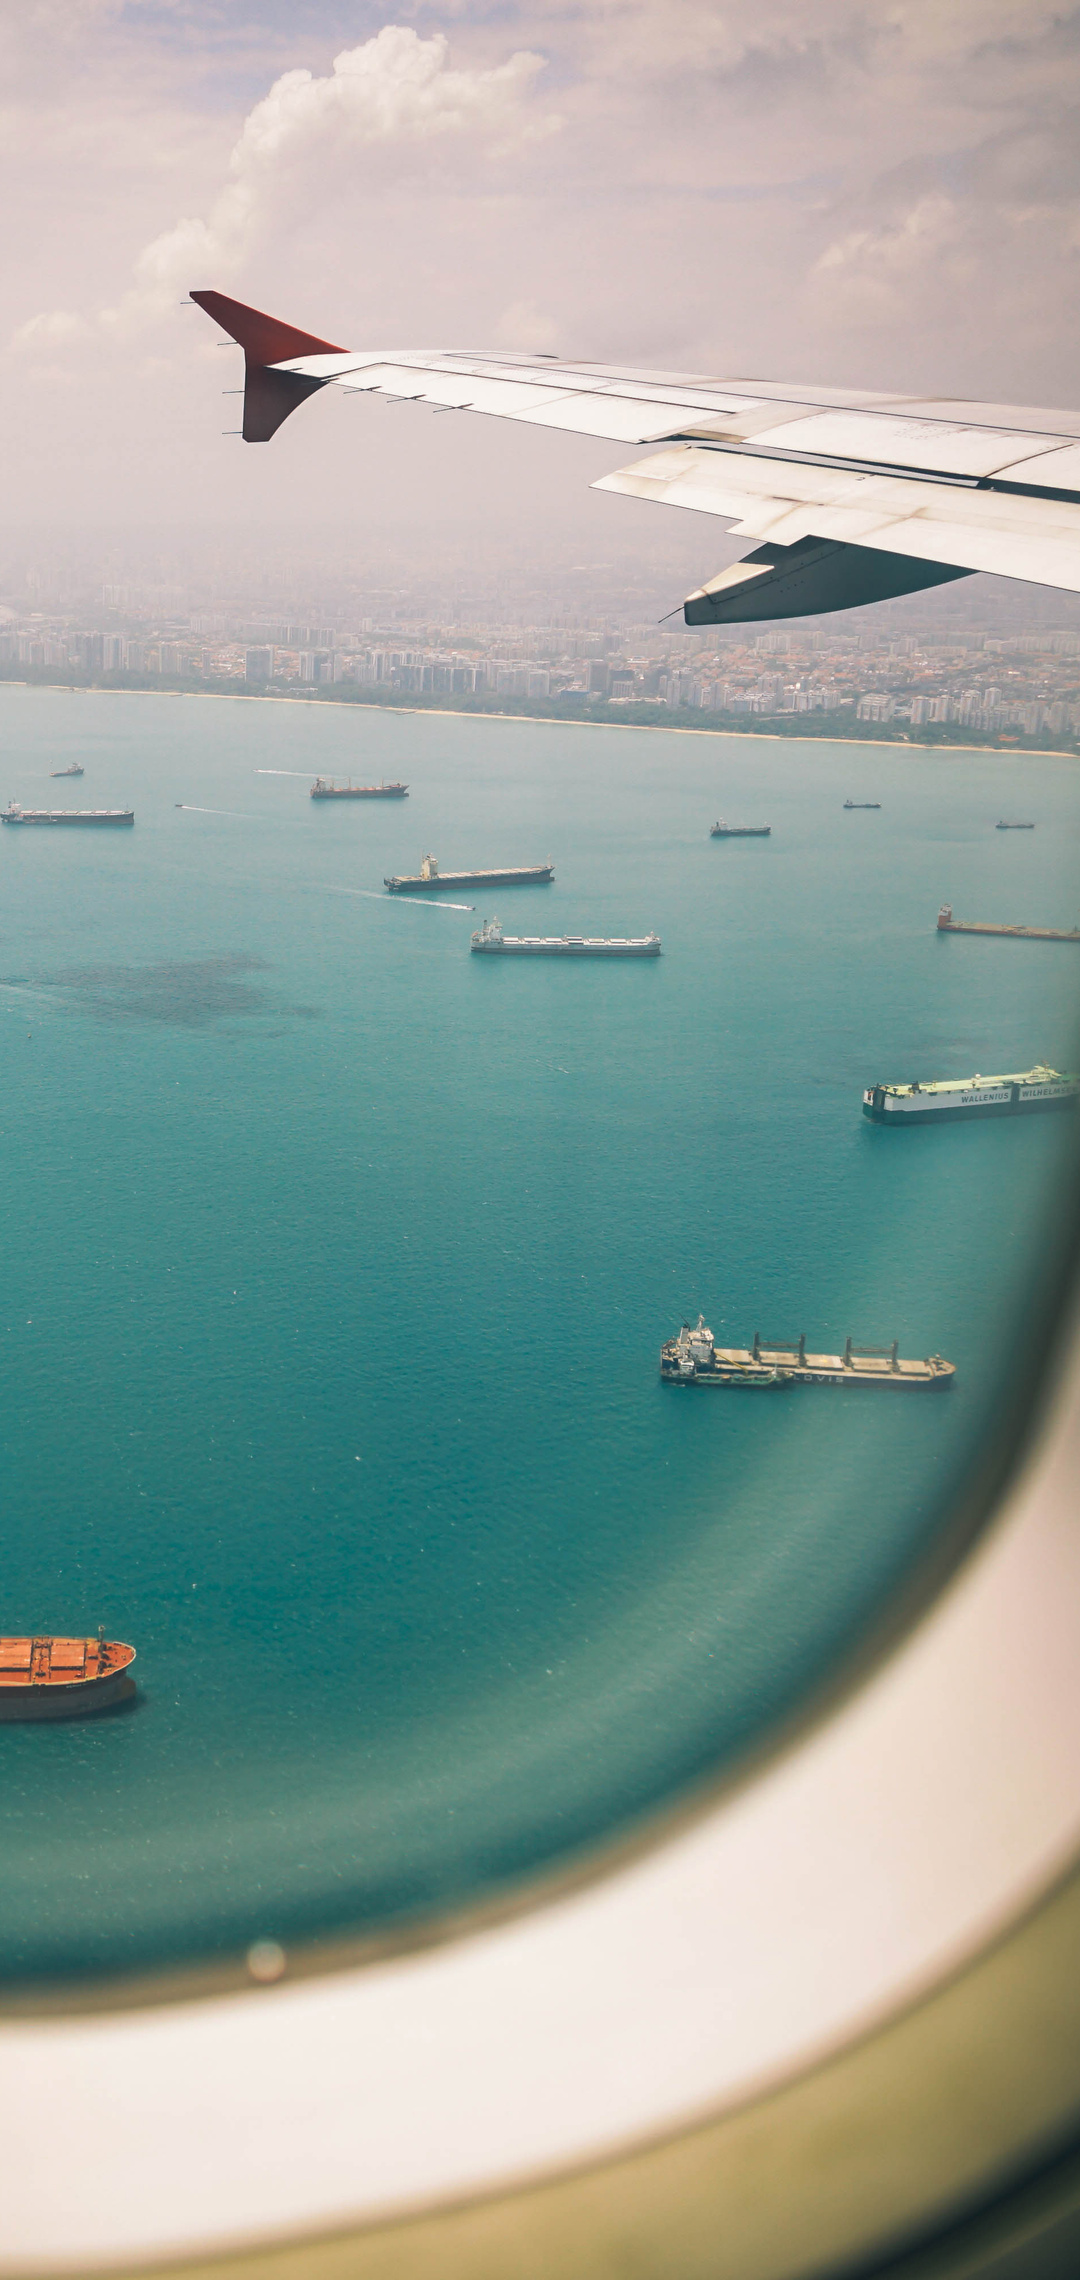 1080x2280 Boats Sea View From Airplane Window One Plus 6 Huawei P20